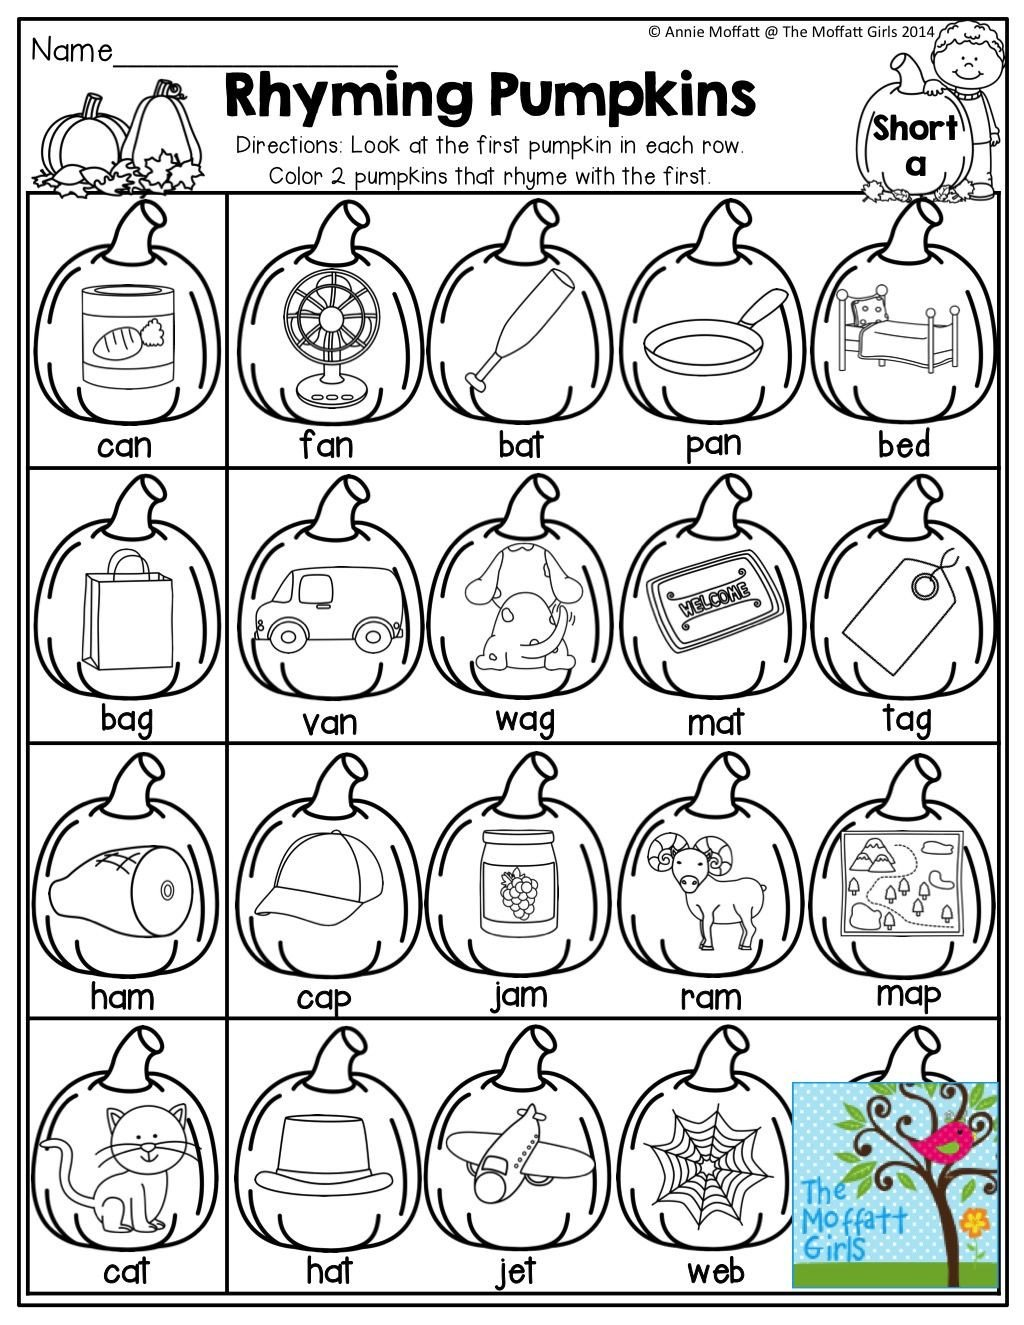 Pumpkin Worksheets for Kindergarten Rhyming Pumpkins Match the First Pumpkin with the Pumpkin